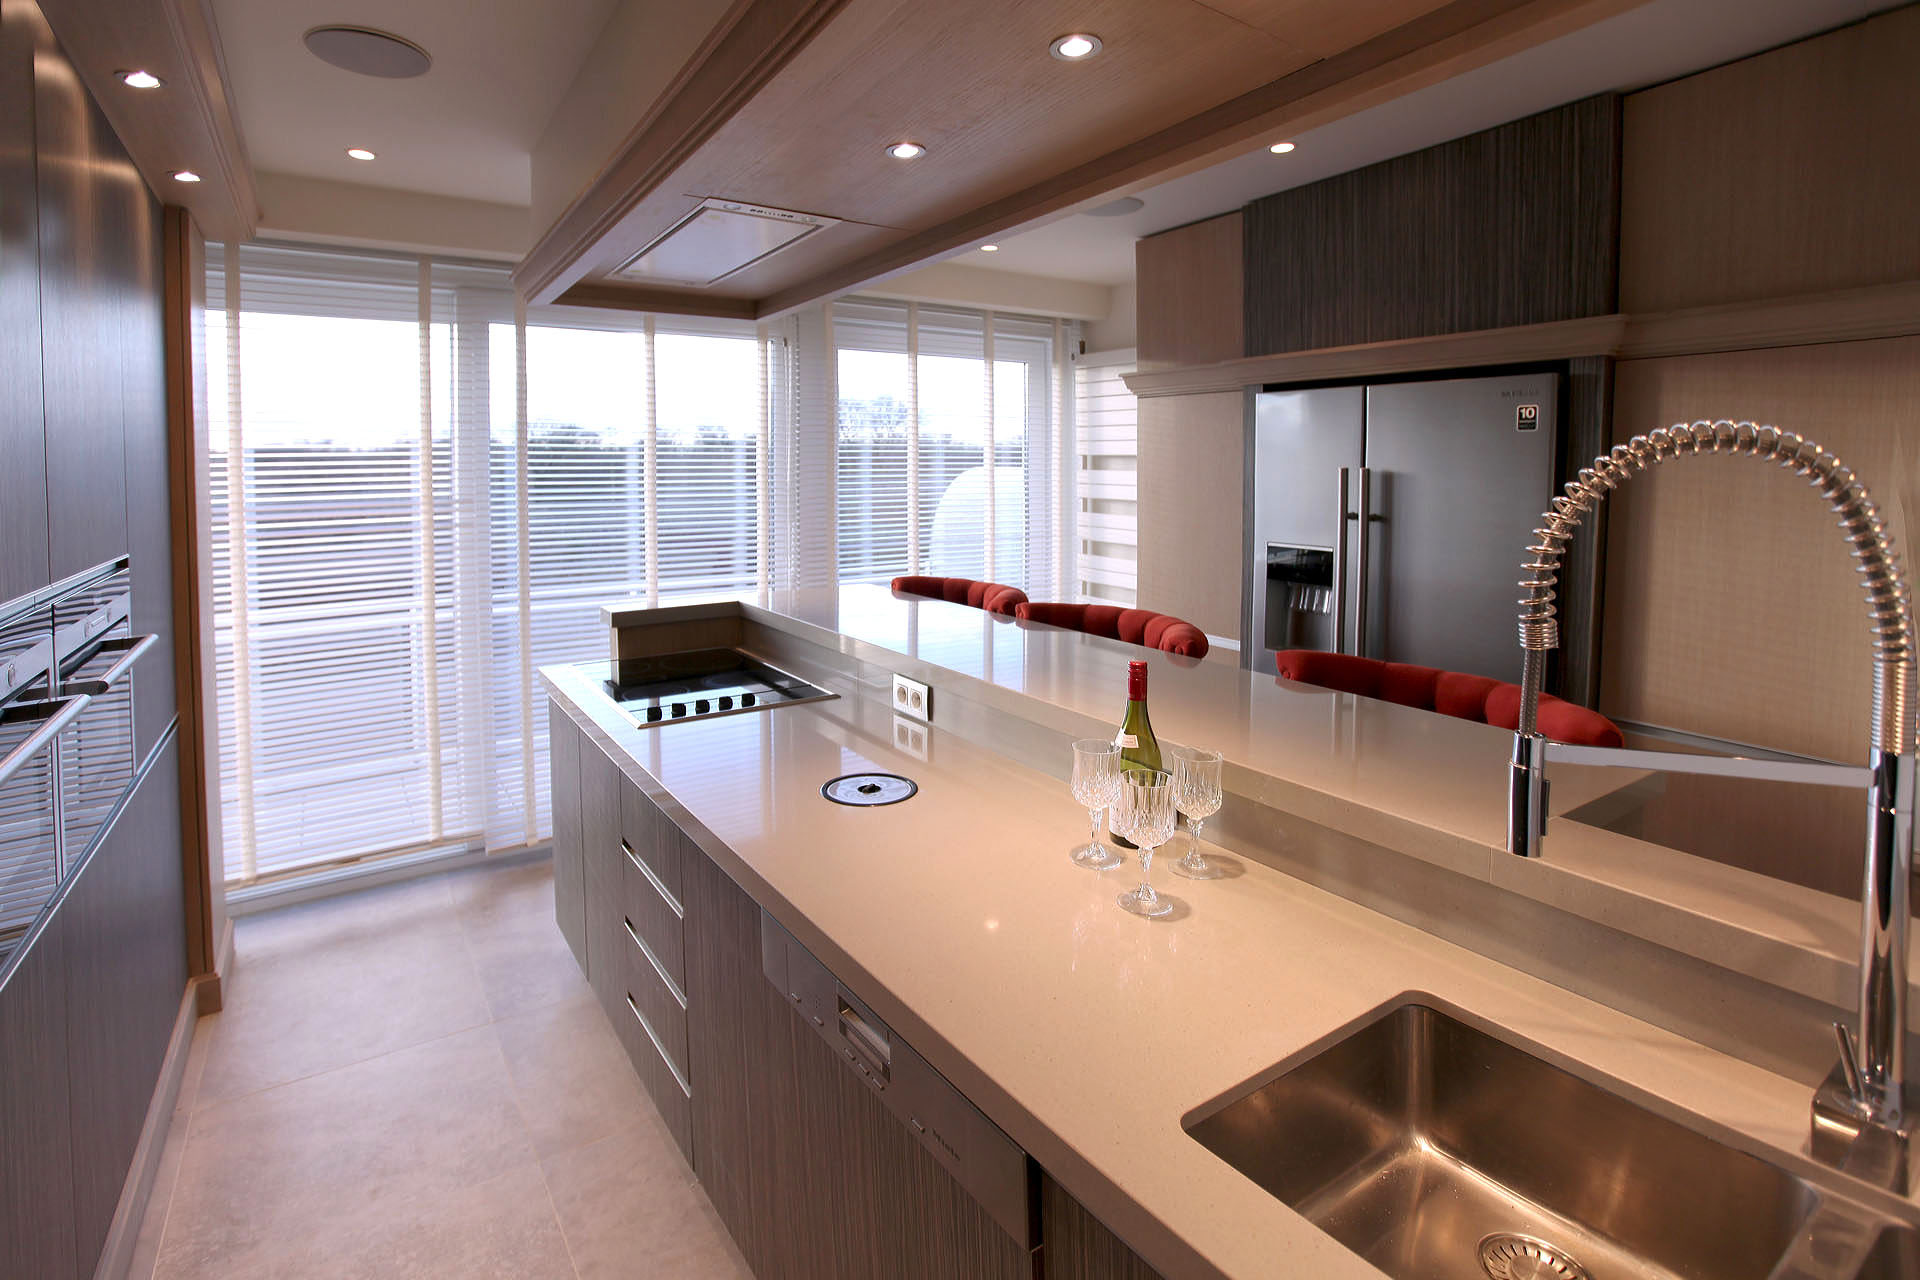 Contemporary Interior - Marcotte Style